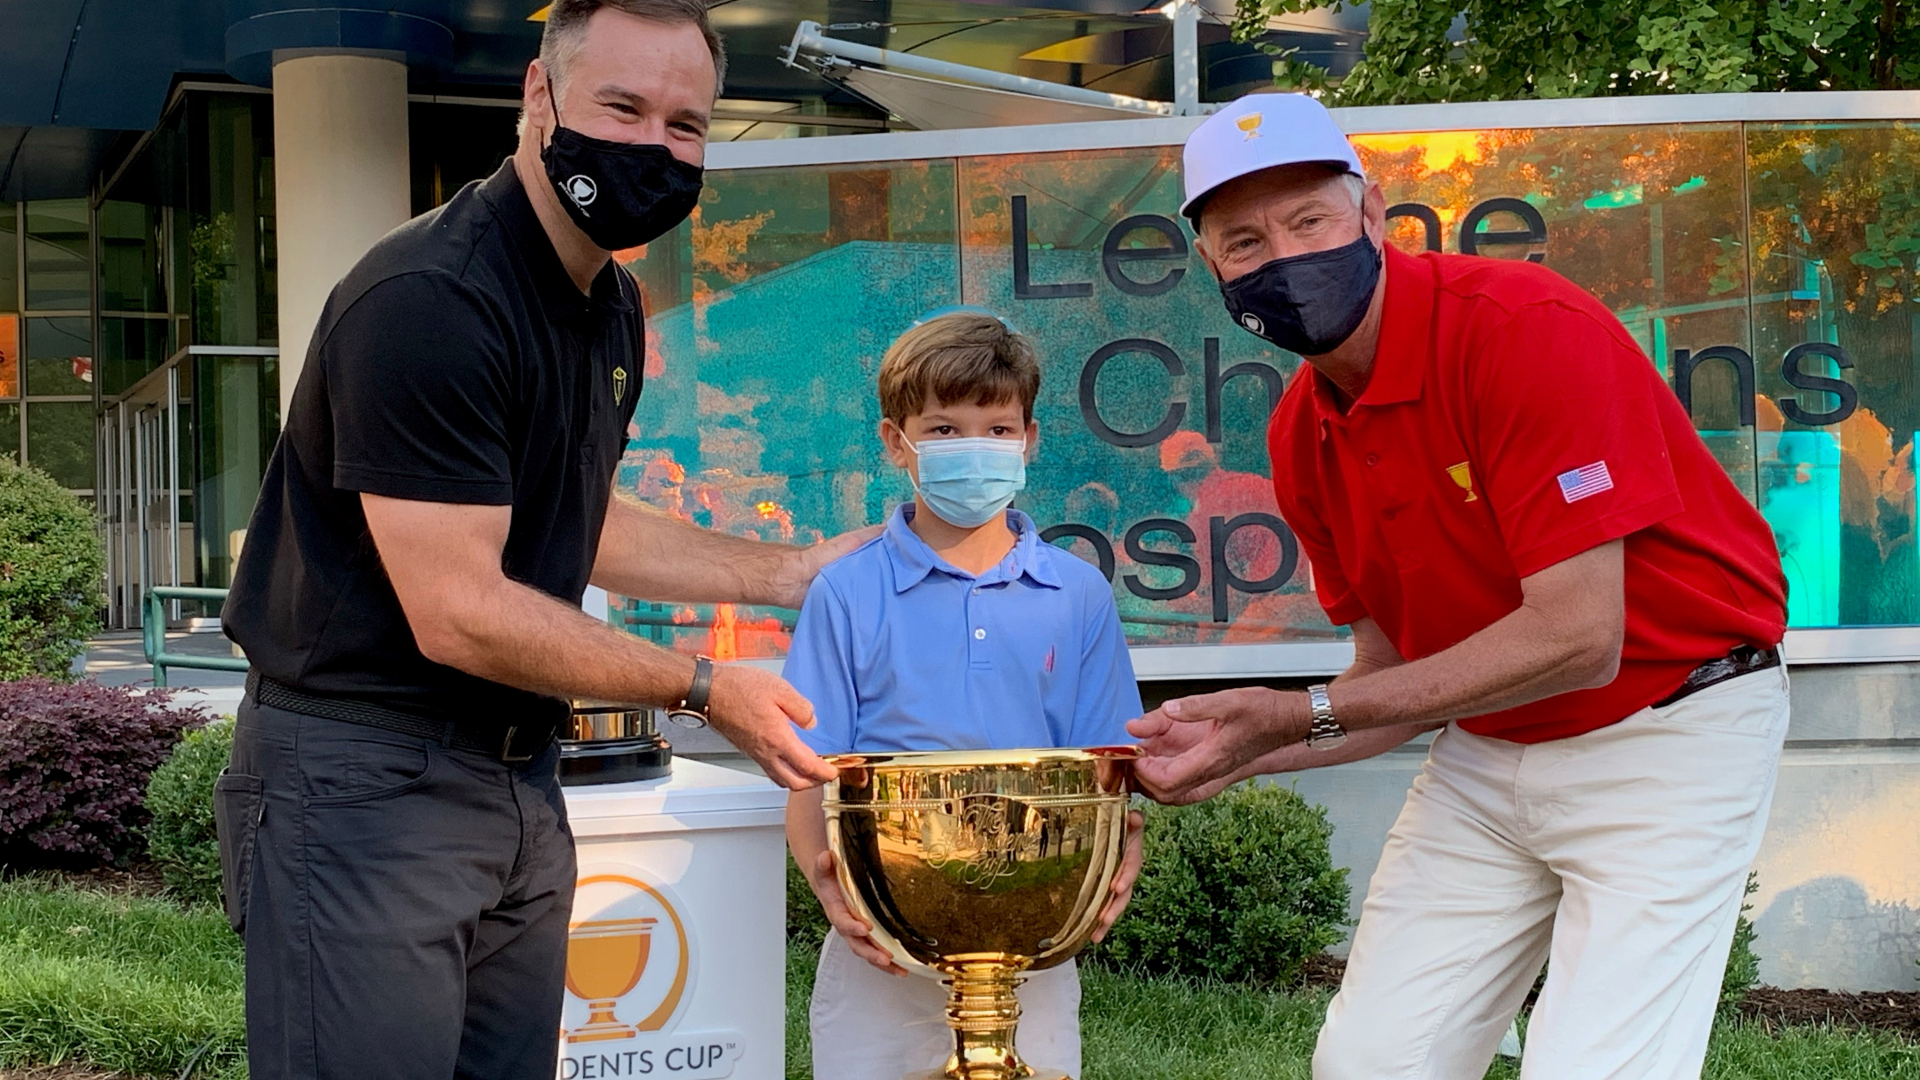 The Presidents Cup today announced Atrium Health as the Official Health Care Provider of golf's premier global team event, to be held at Quail Hollow Club, in Charlotte, the week of Sept. 19-25, 2022.